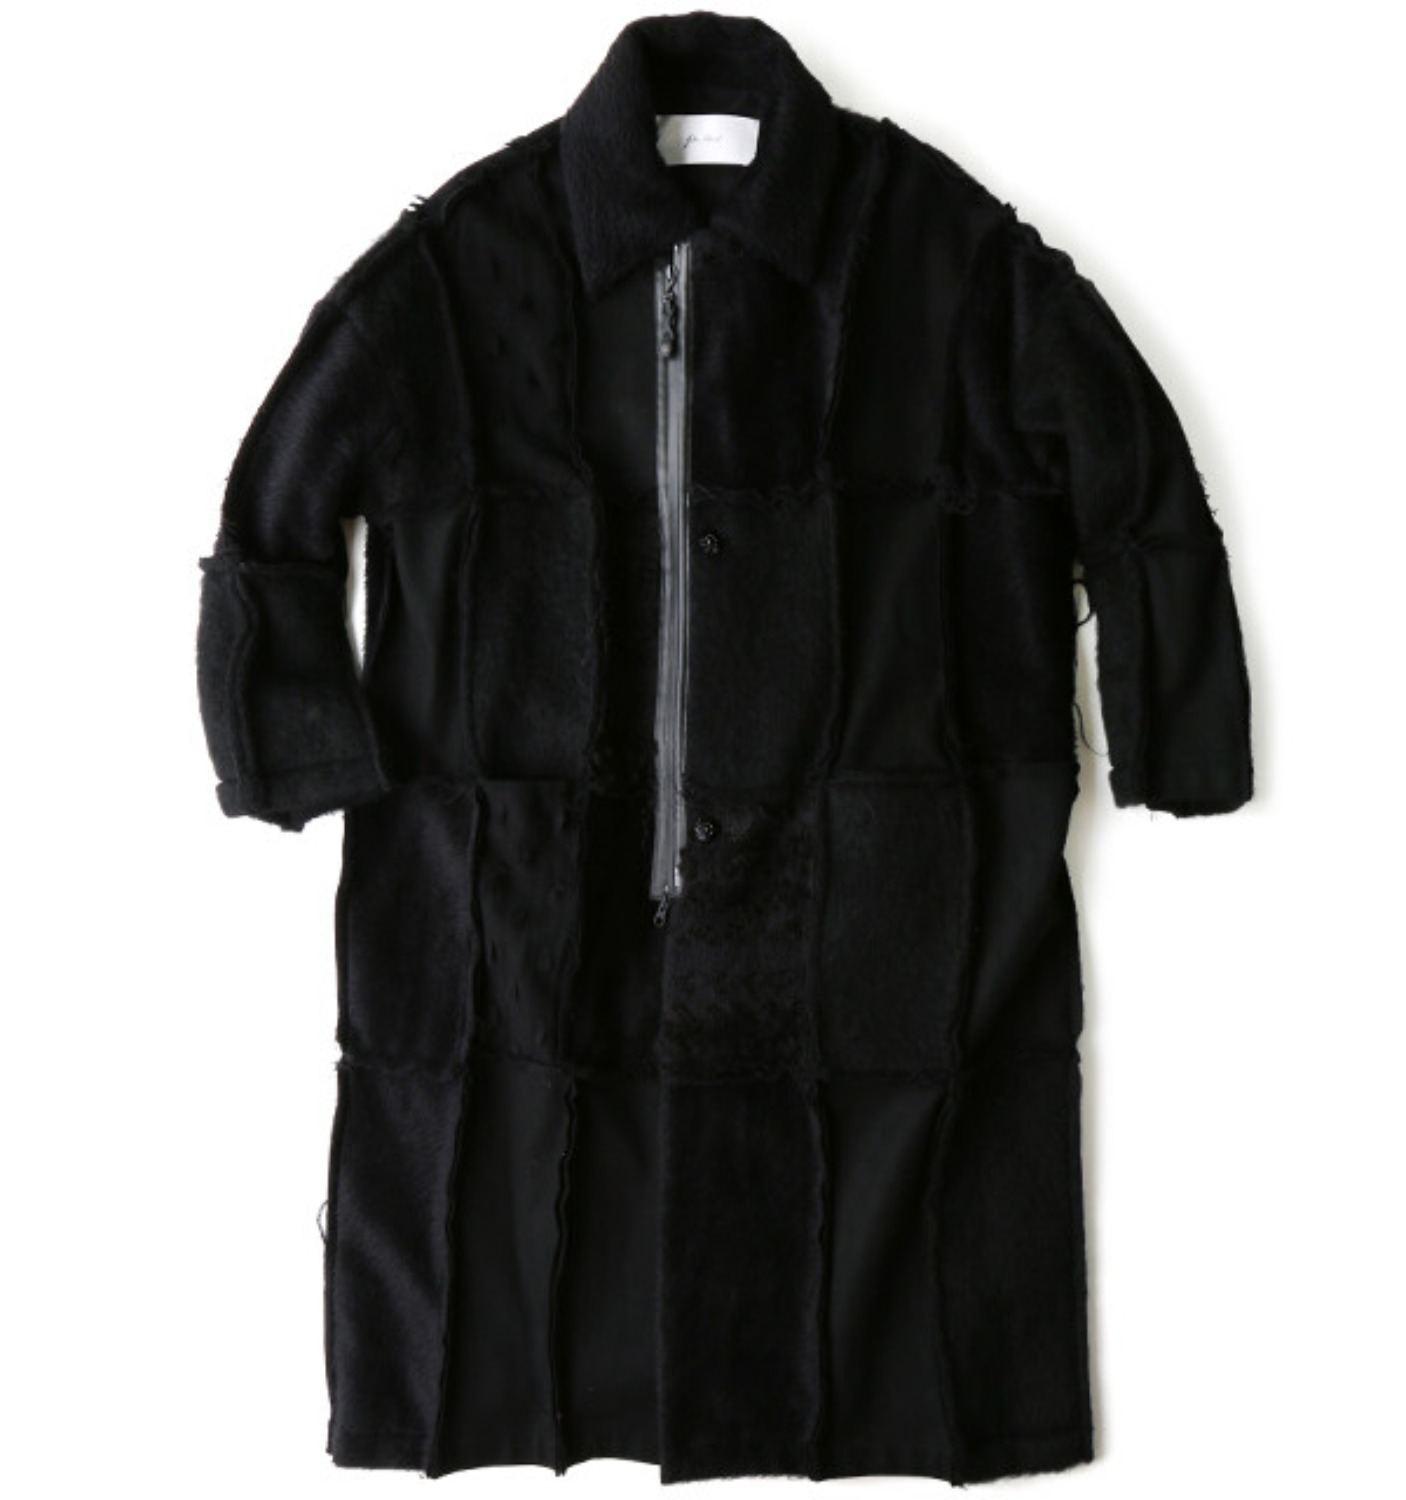 LADIES WOVEN COAT (CLF-1806)